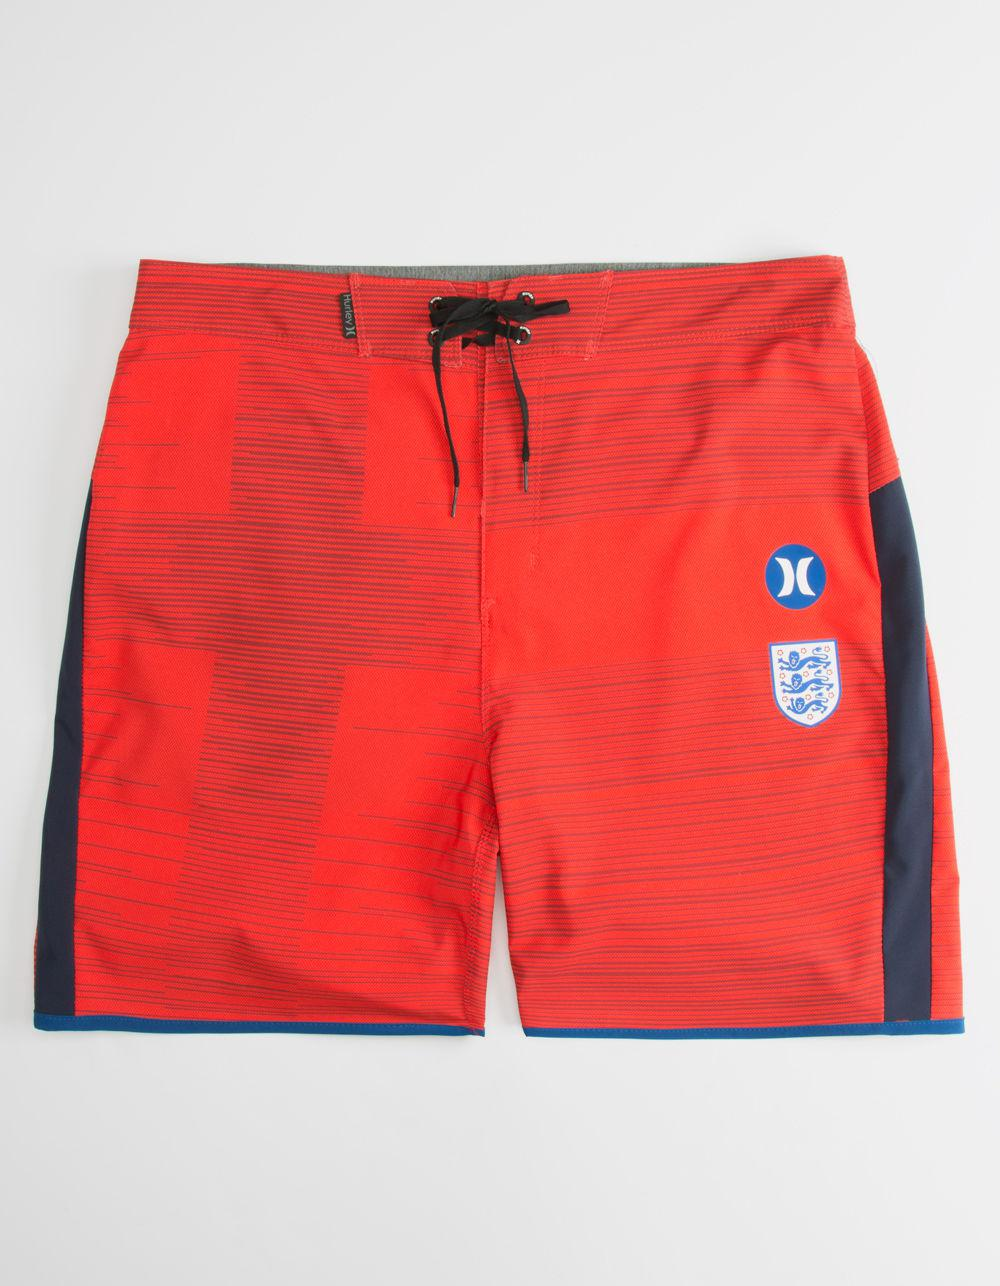 6c0a482f64 Hurley Phantom England National Team Mens Boardshorts in Red for Men ...